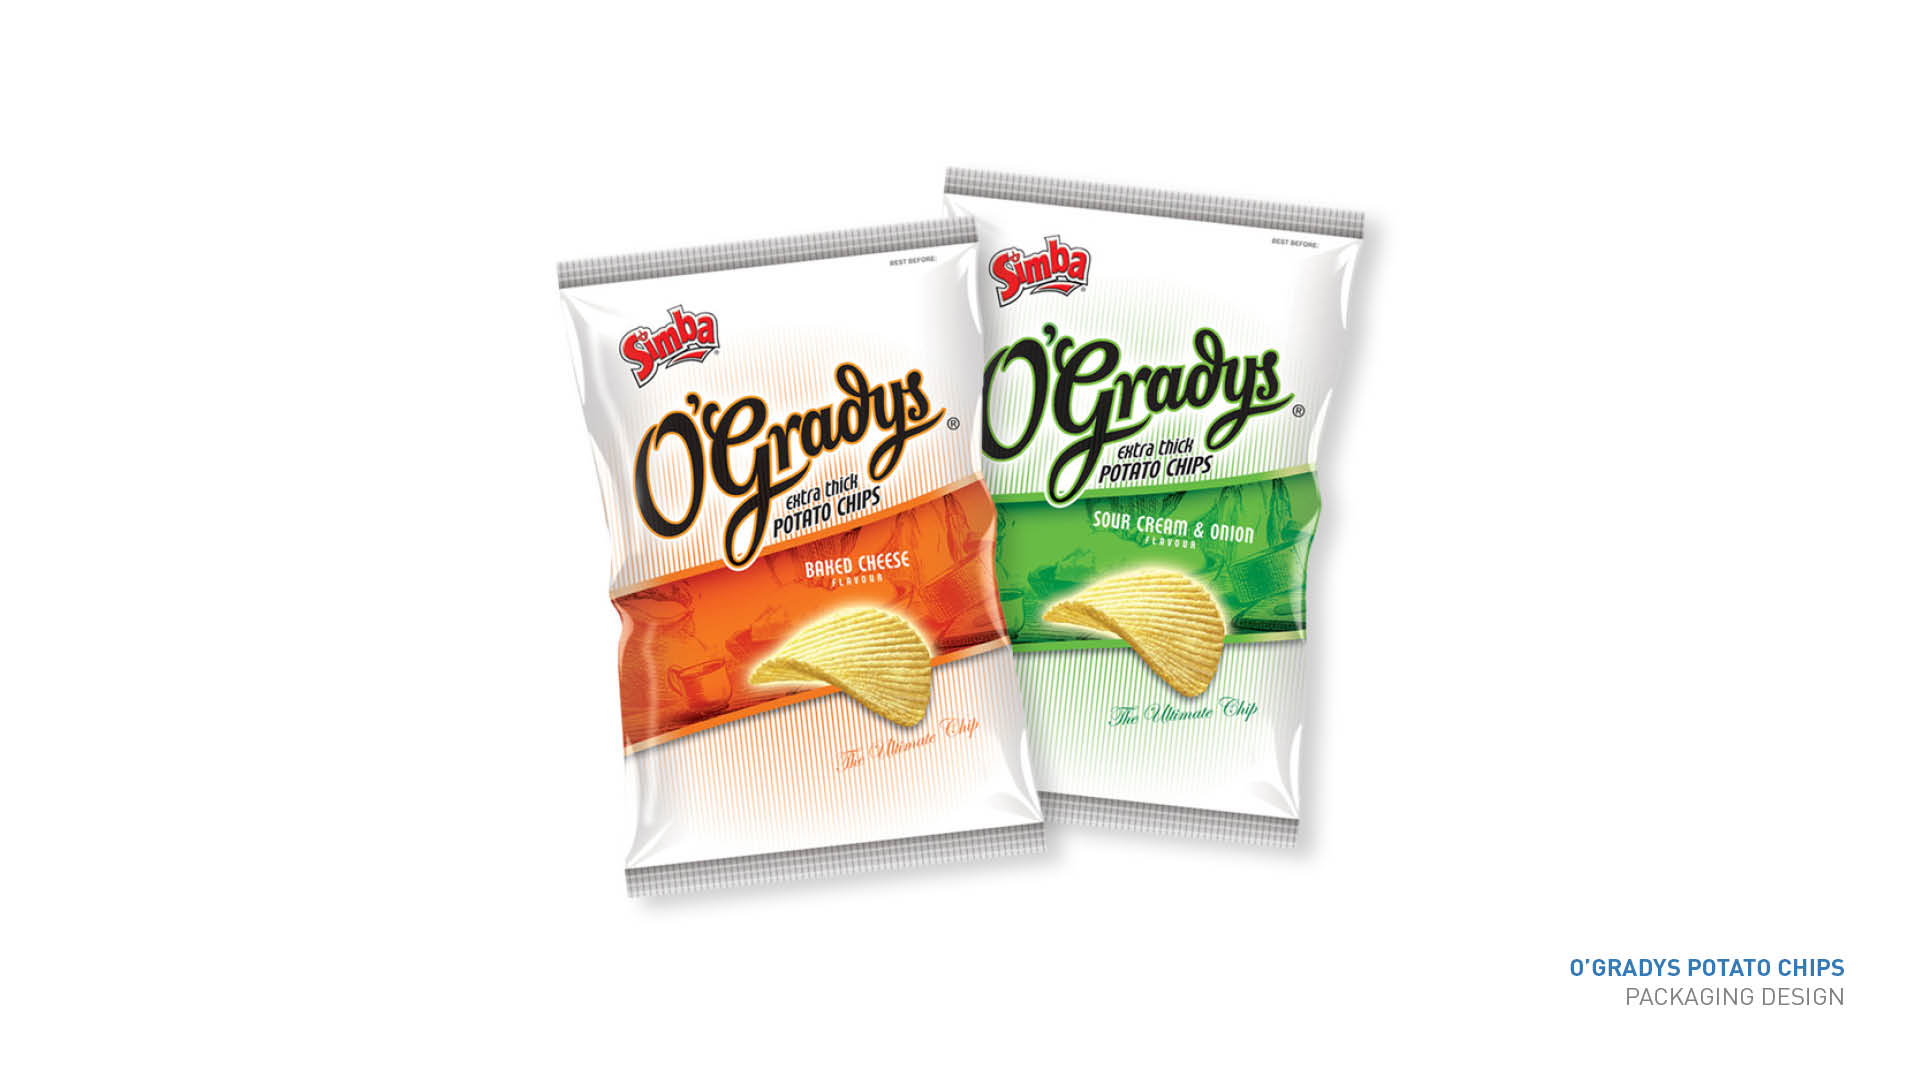 O'Gradys packaging